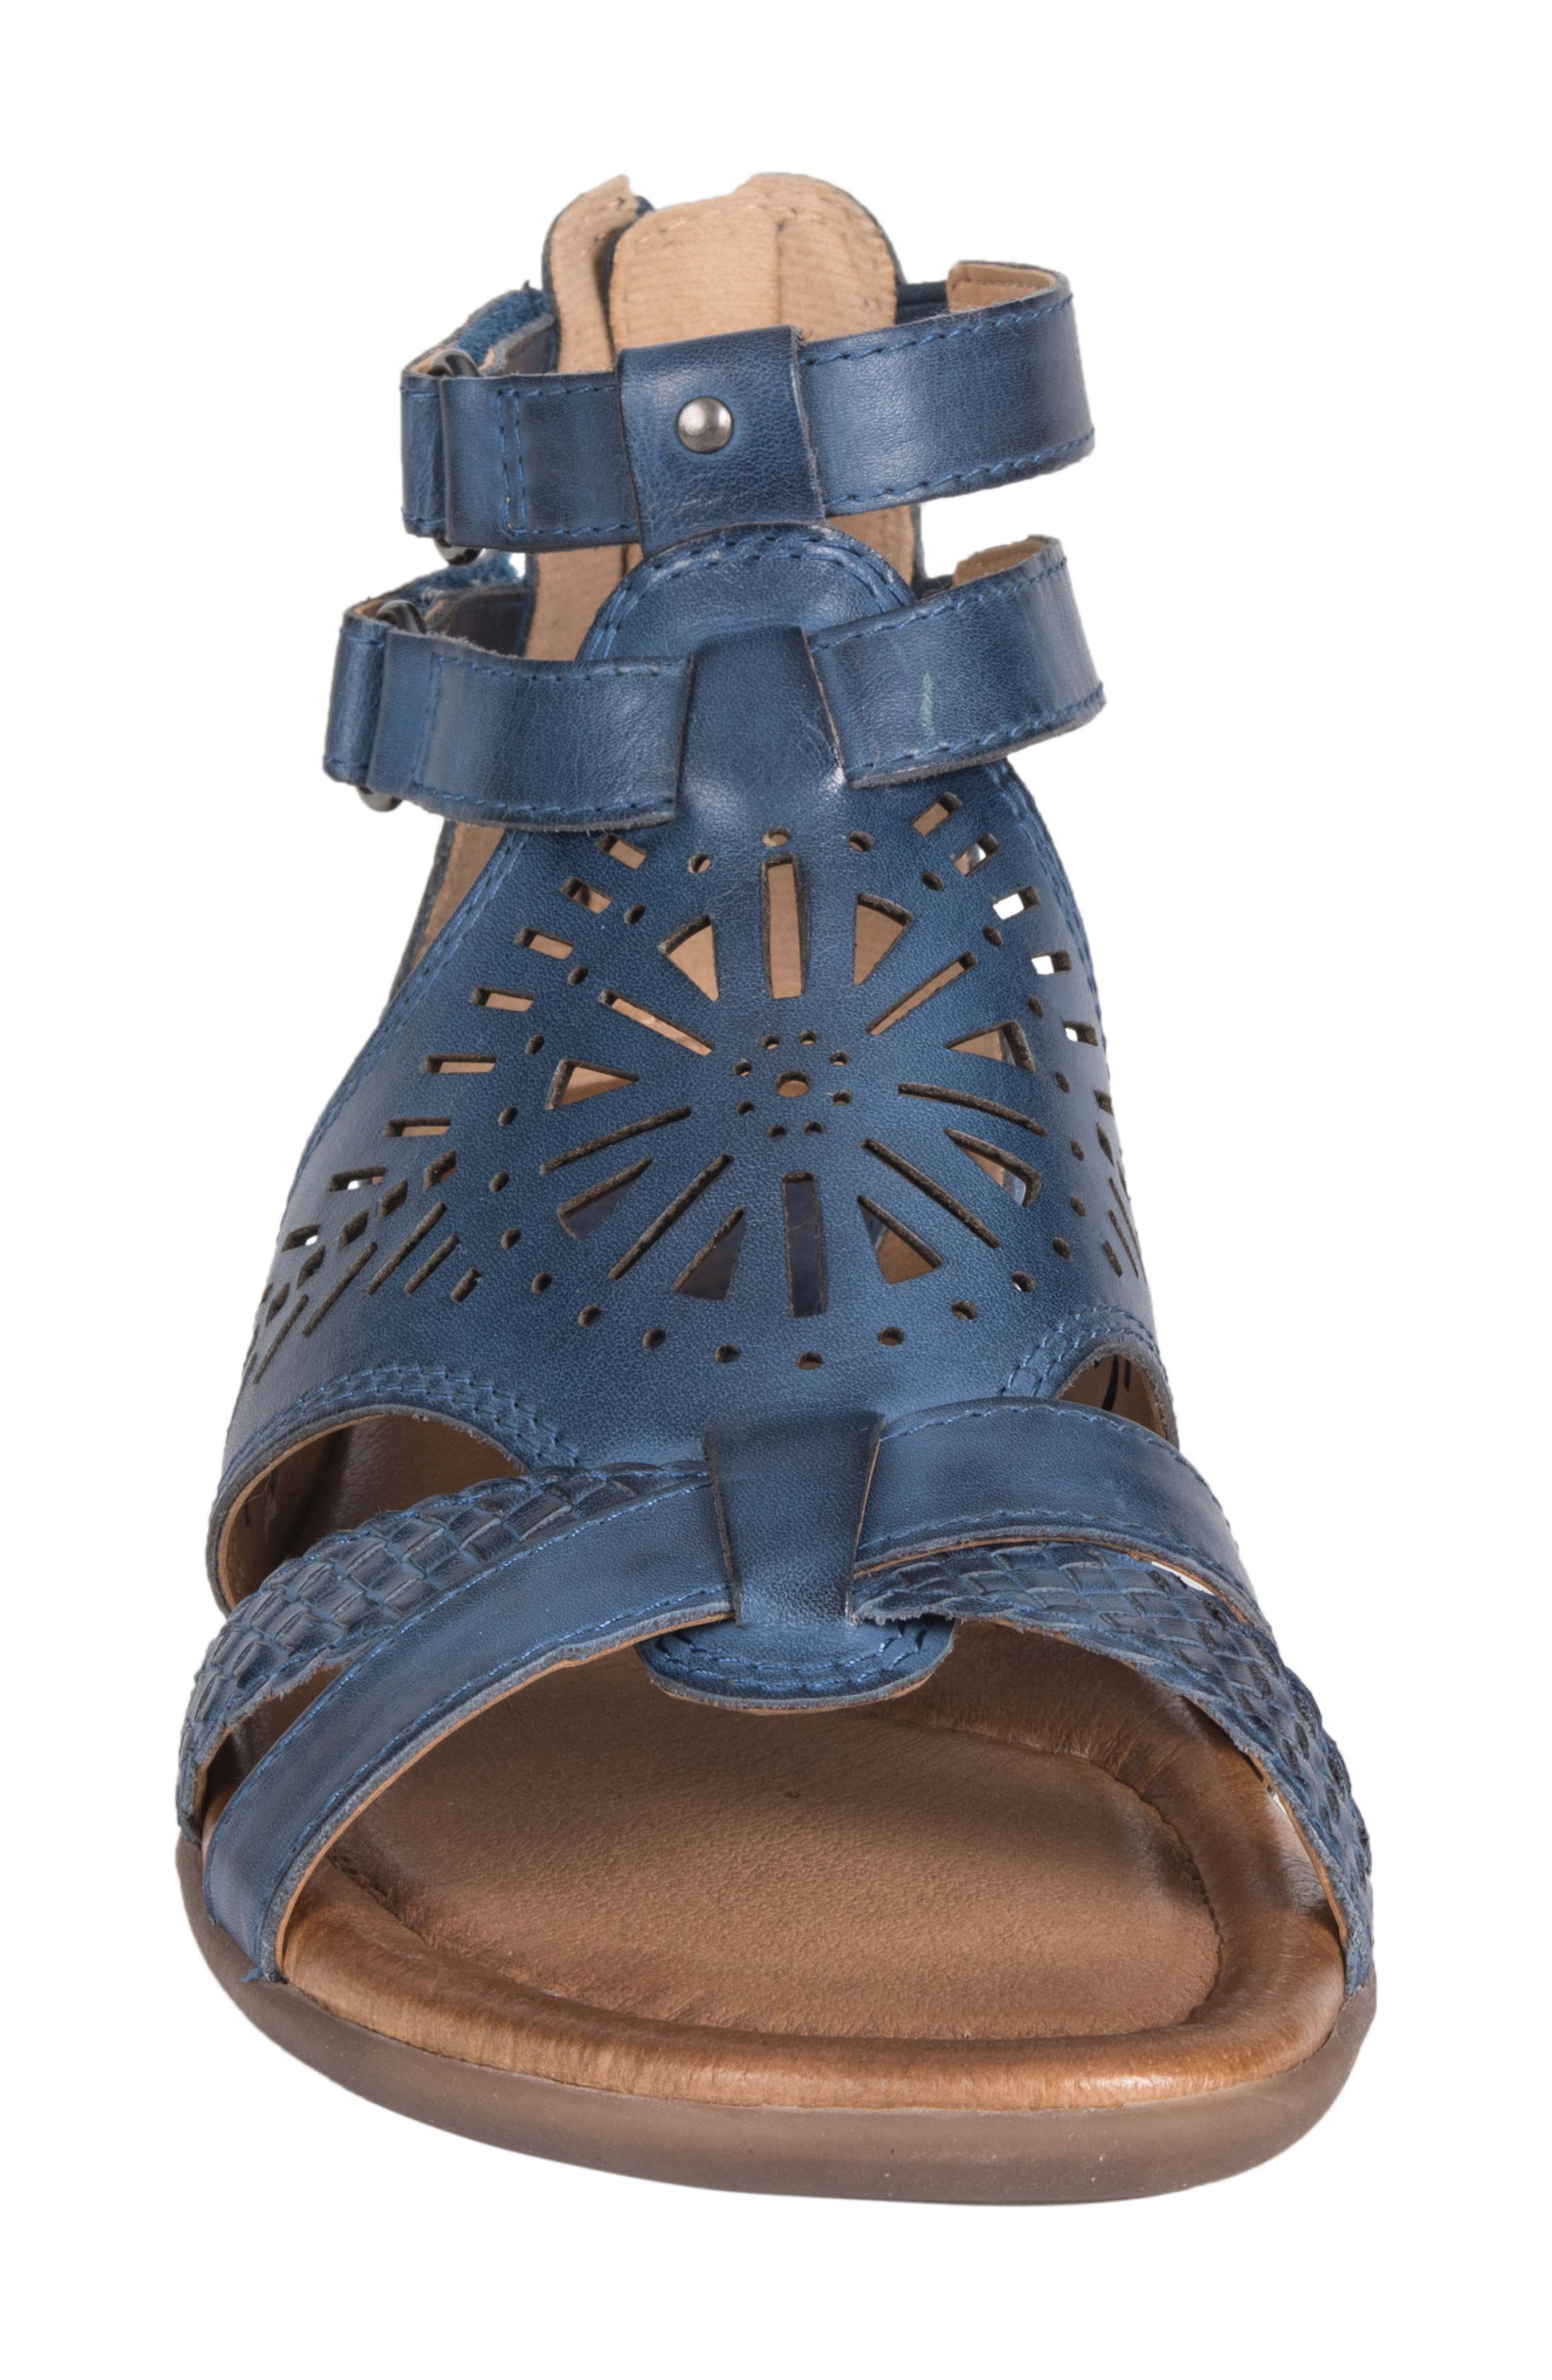 Breaker Sandal,                             Alternate thumbnail 4, color,                             SAPPHIRE BLUE LEATHER